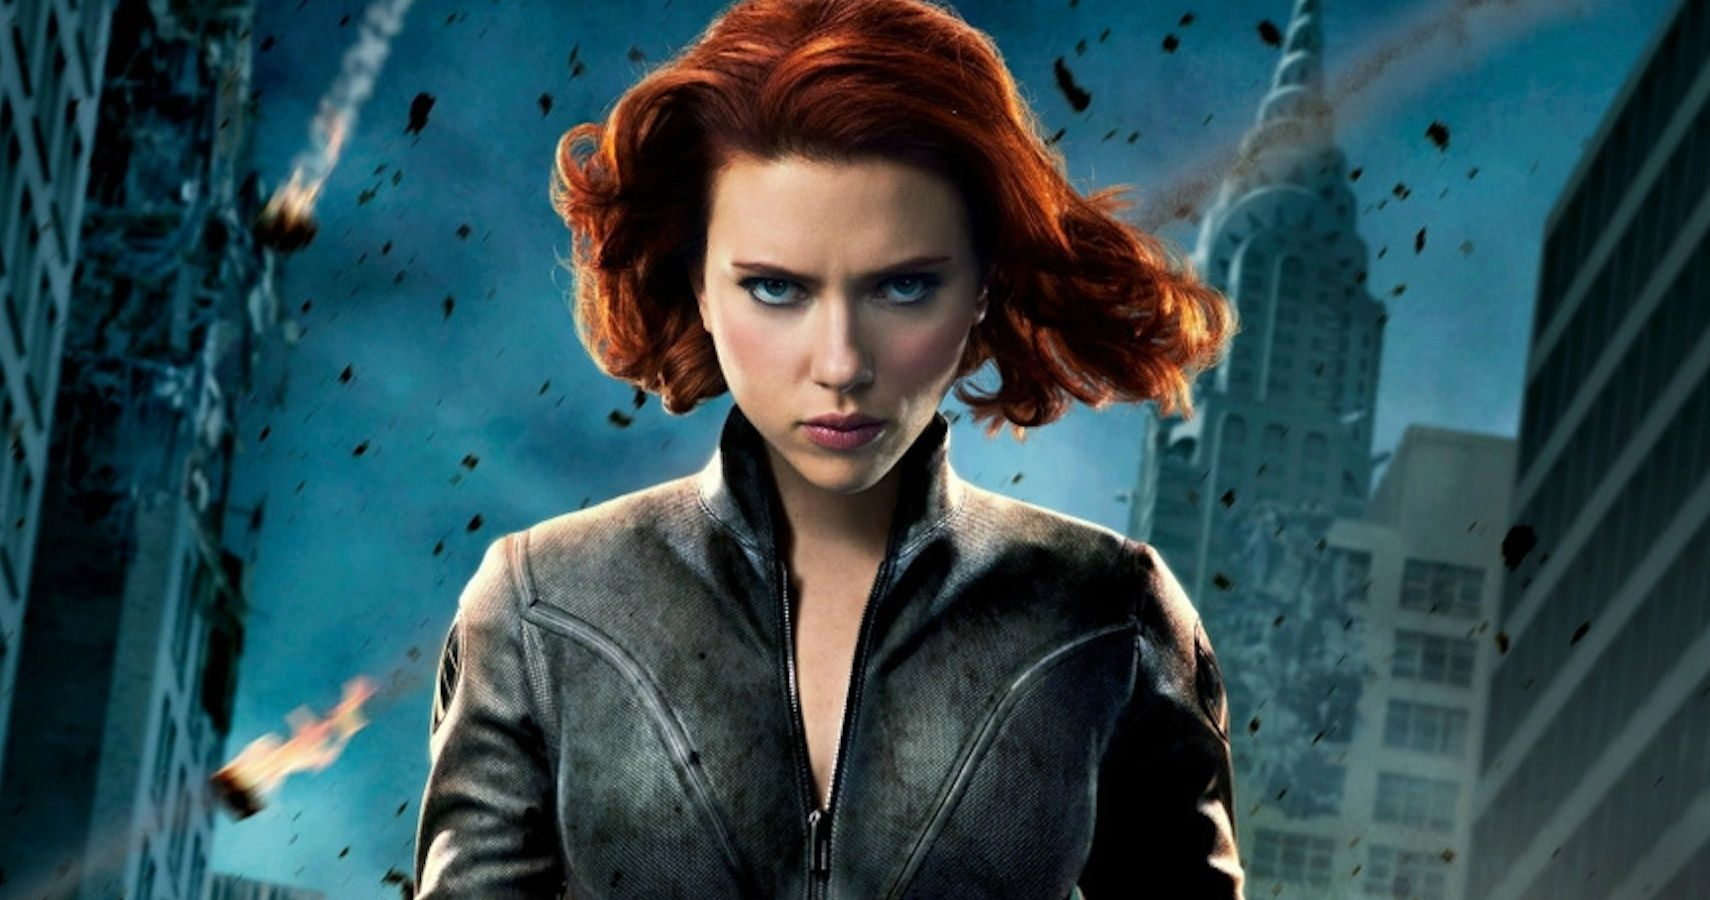 5 Dc Characters Black Widow Could Easily Defeat 5 She